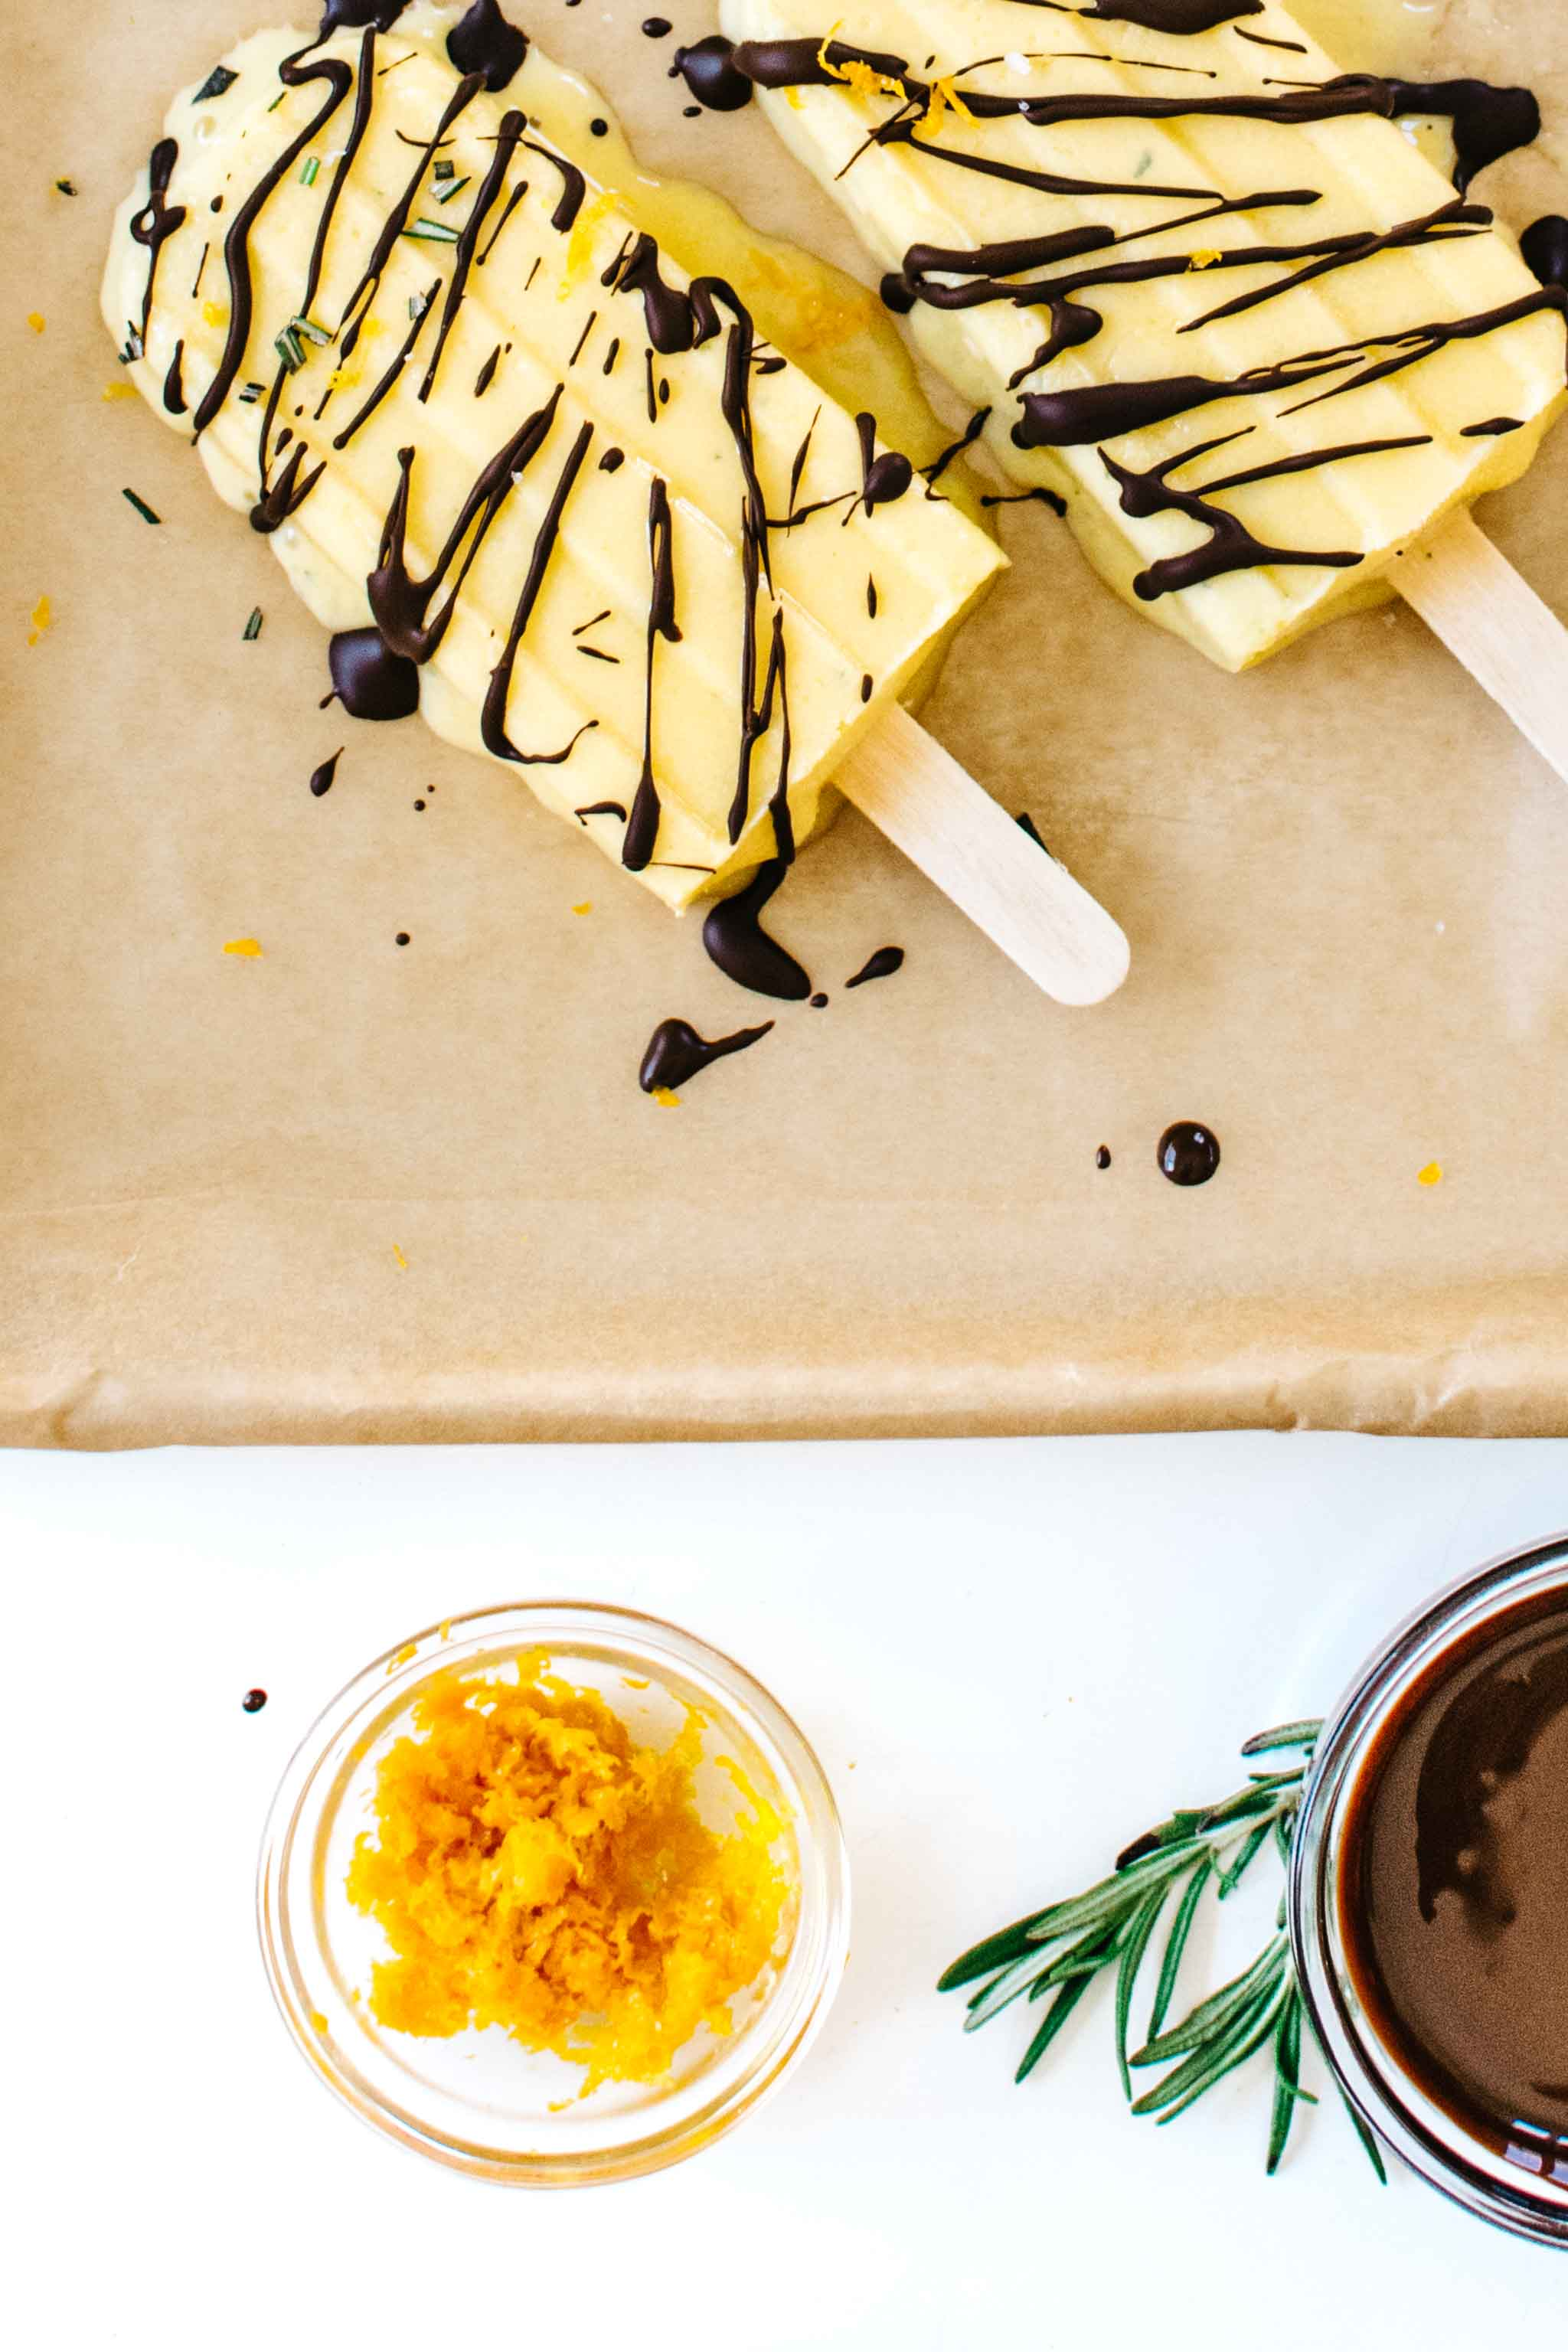 Sweet Orange & Rosemary Creamsicles with Salty Chocolate Drizzle from Kale & Caramel: Recipes for Body, Heart, and Table